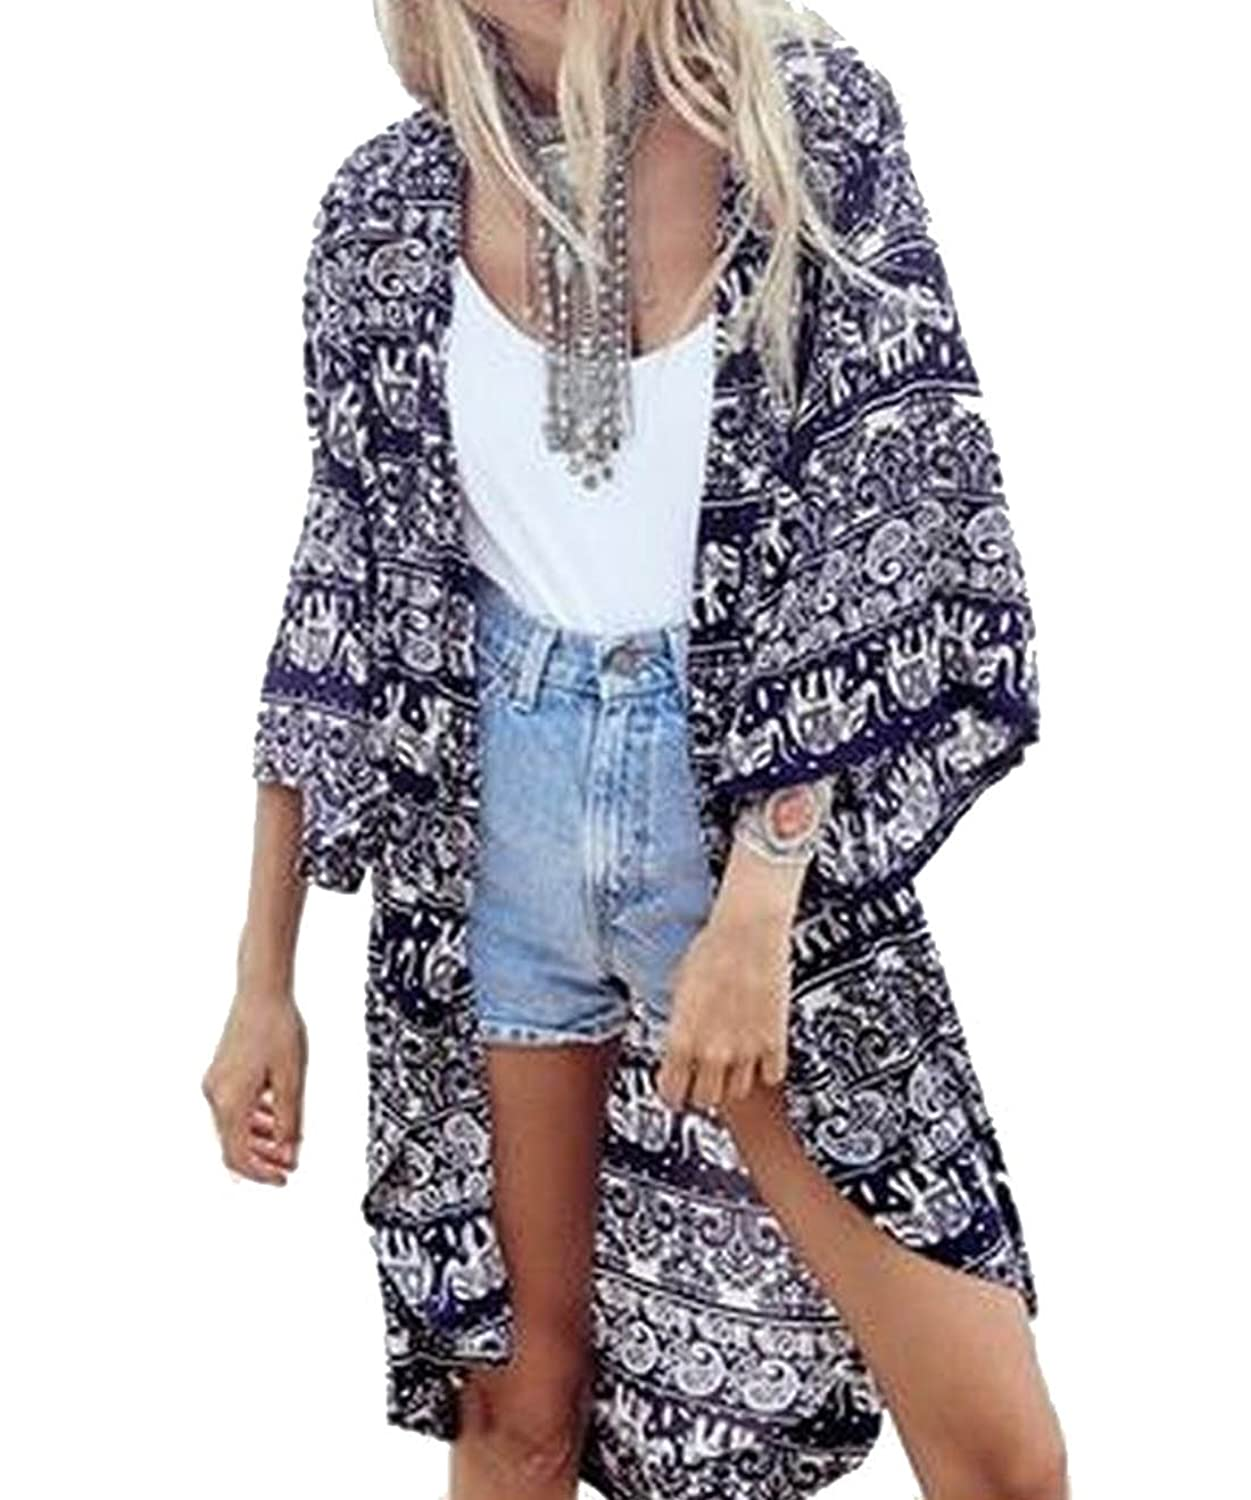 Zago Womens Baggy Front Open Printed Tops Fashion Tunic Cardigan